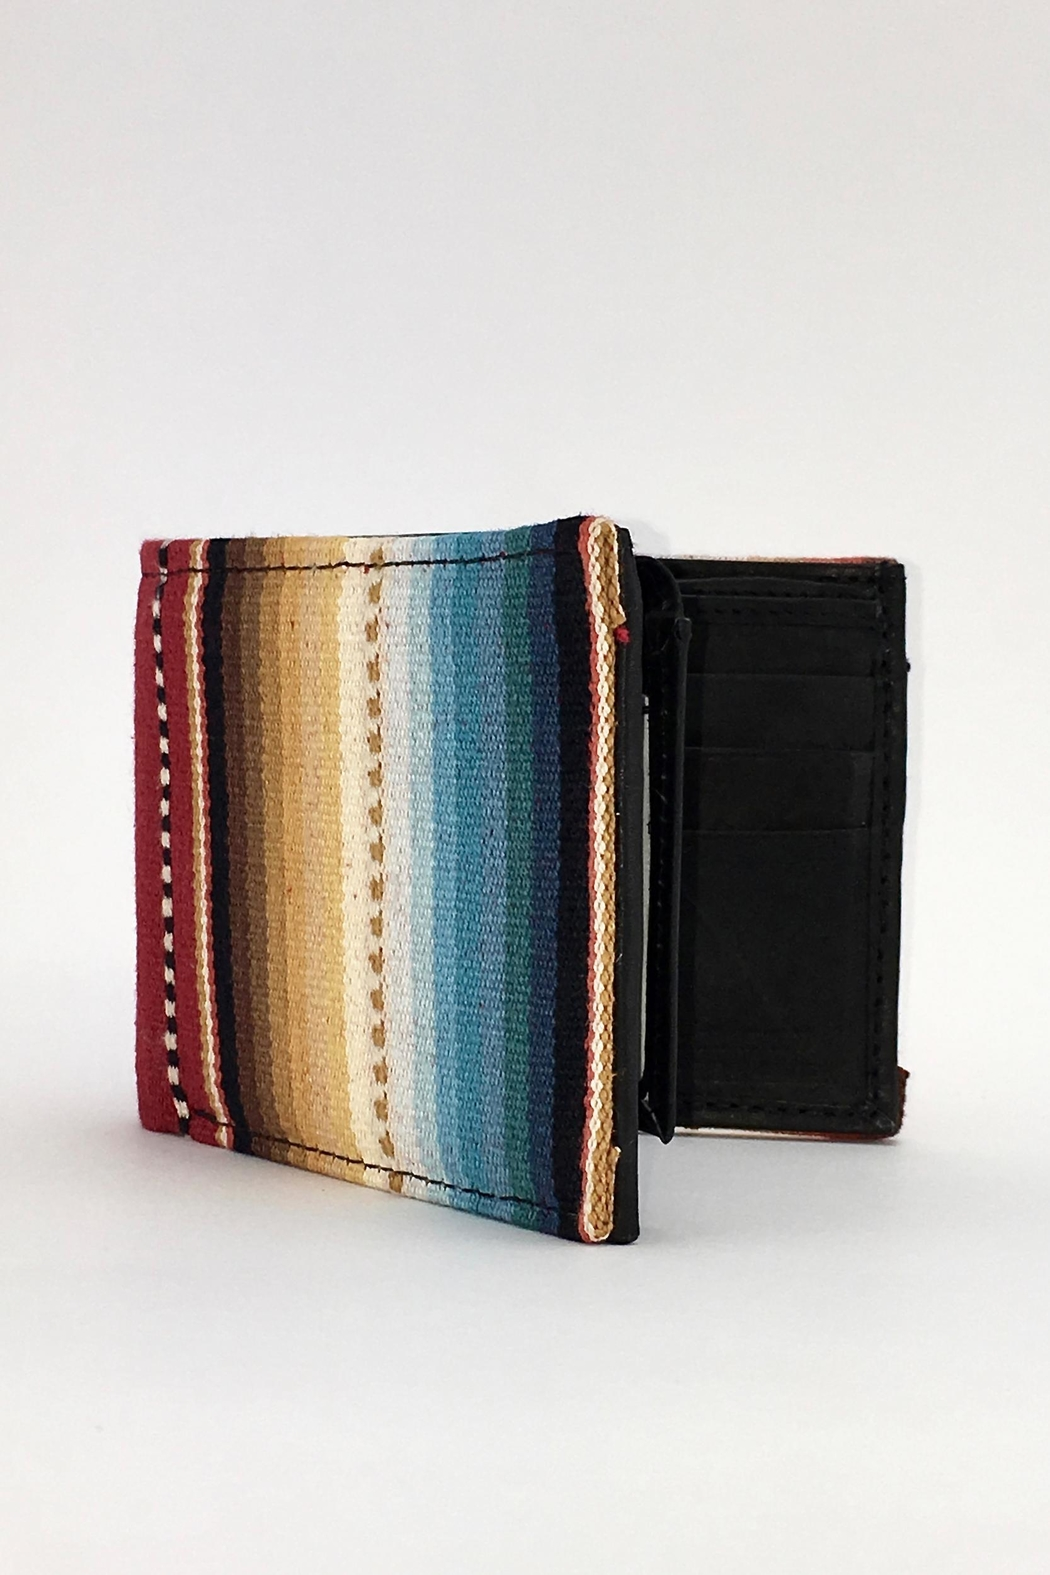 Unbranded Red-Sarape-Woven-Textile Handcrafted Billfold-Wallet - Main Image